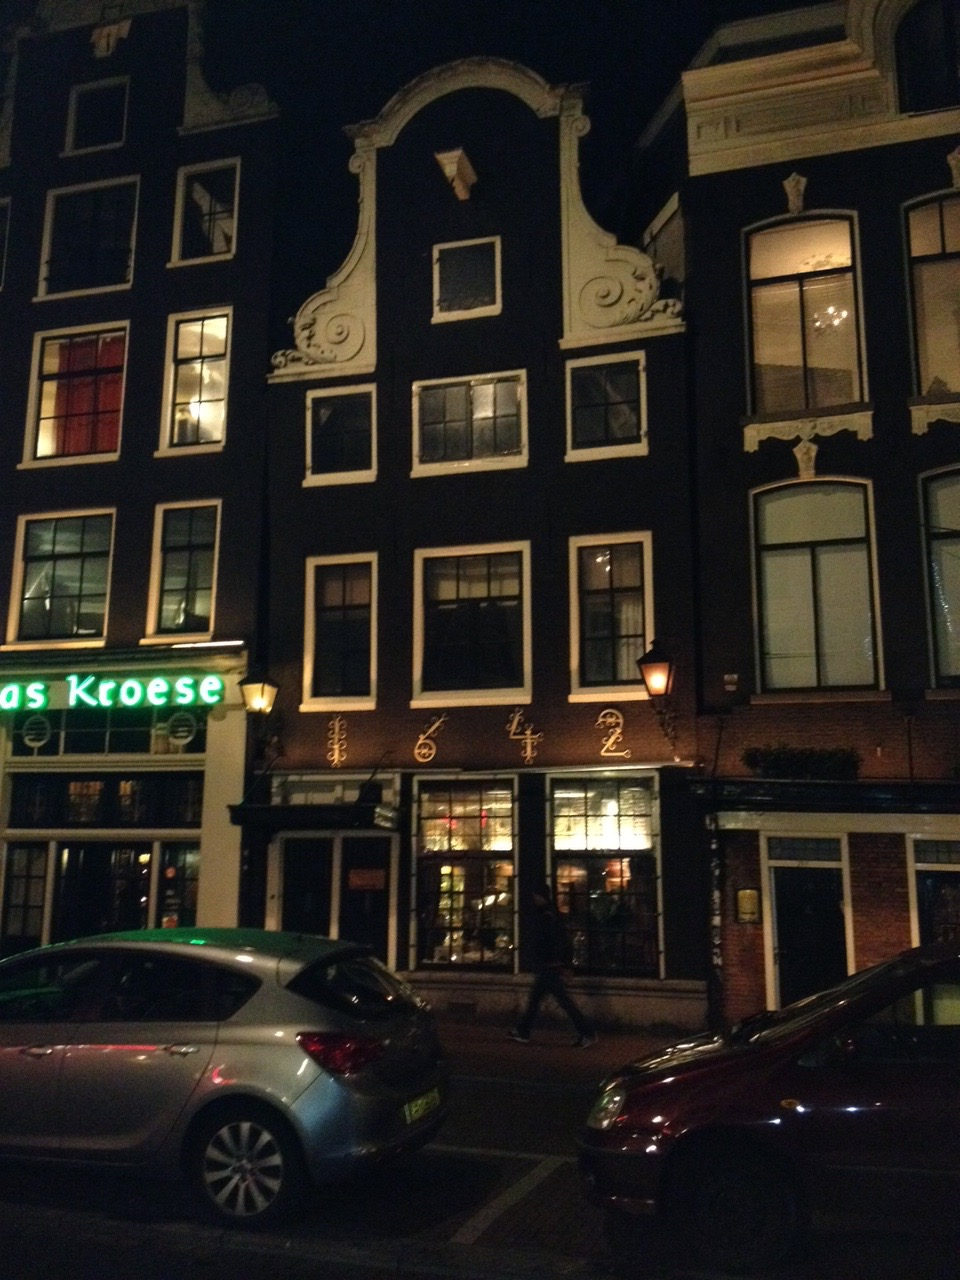 Across the street from our Rijsttafel restaurant. We marvel at how old these buildings are.